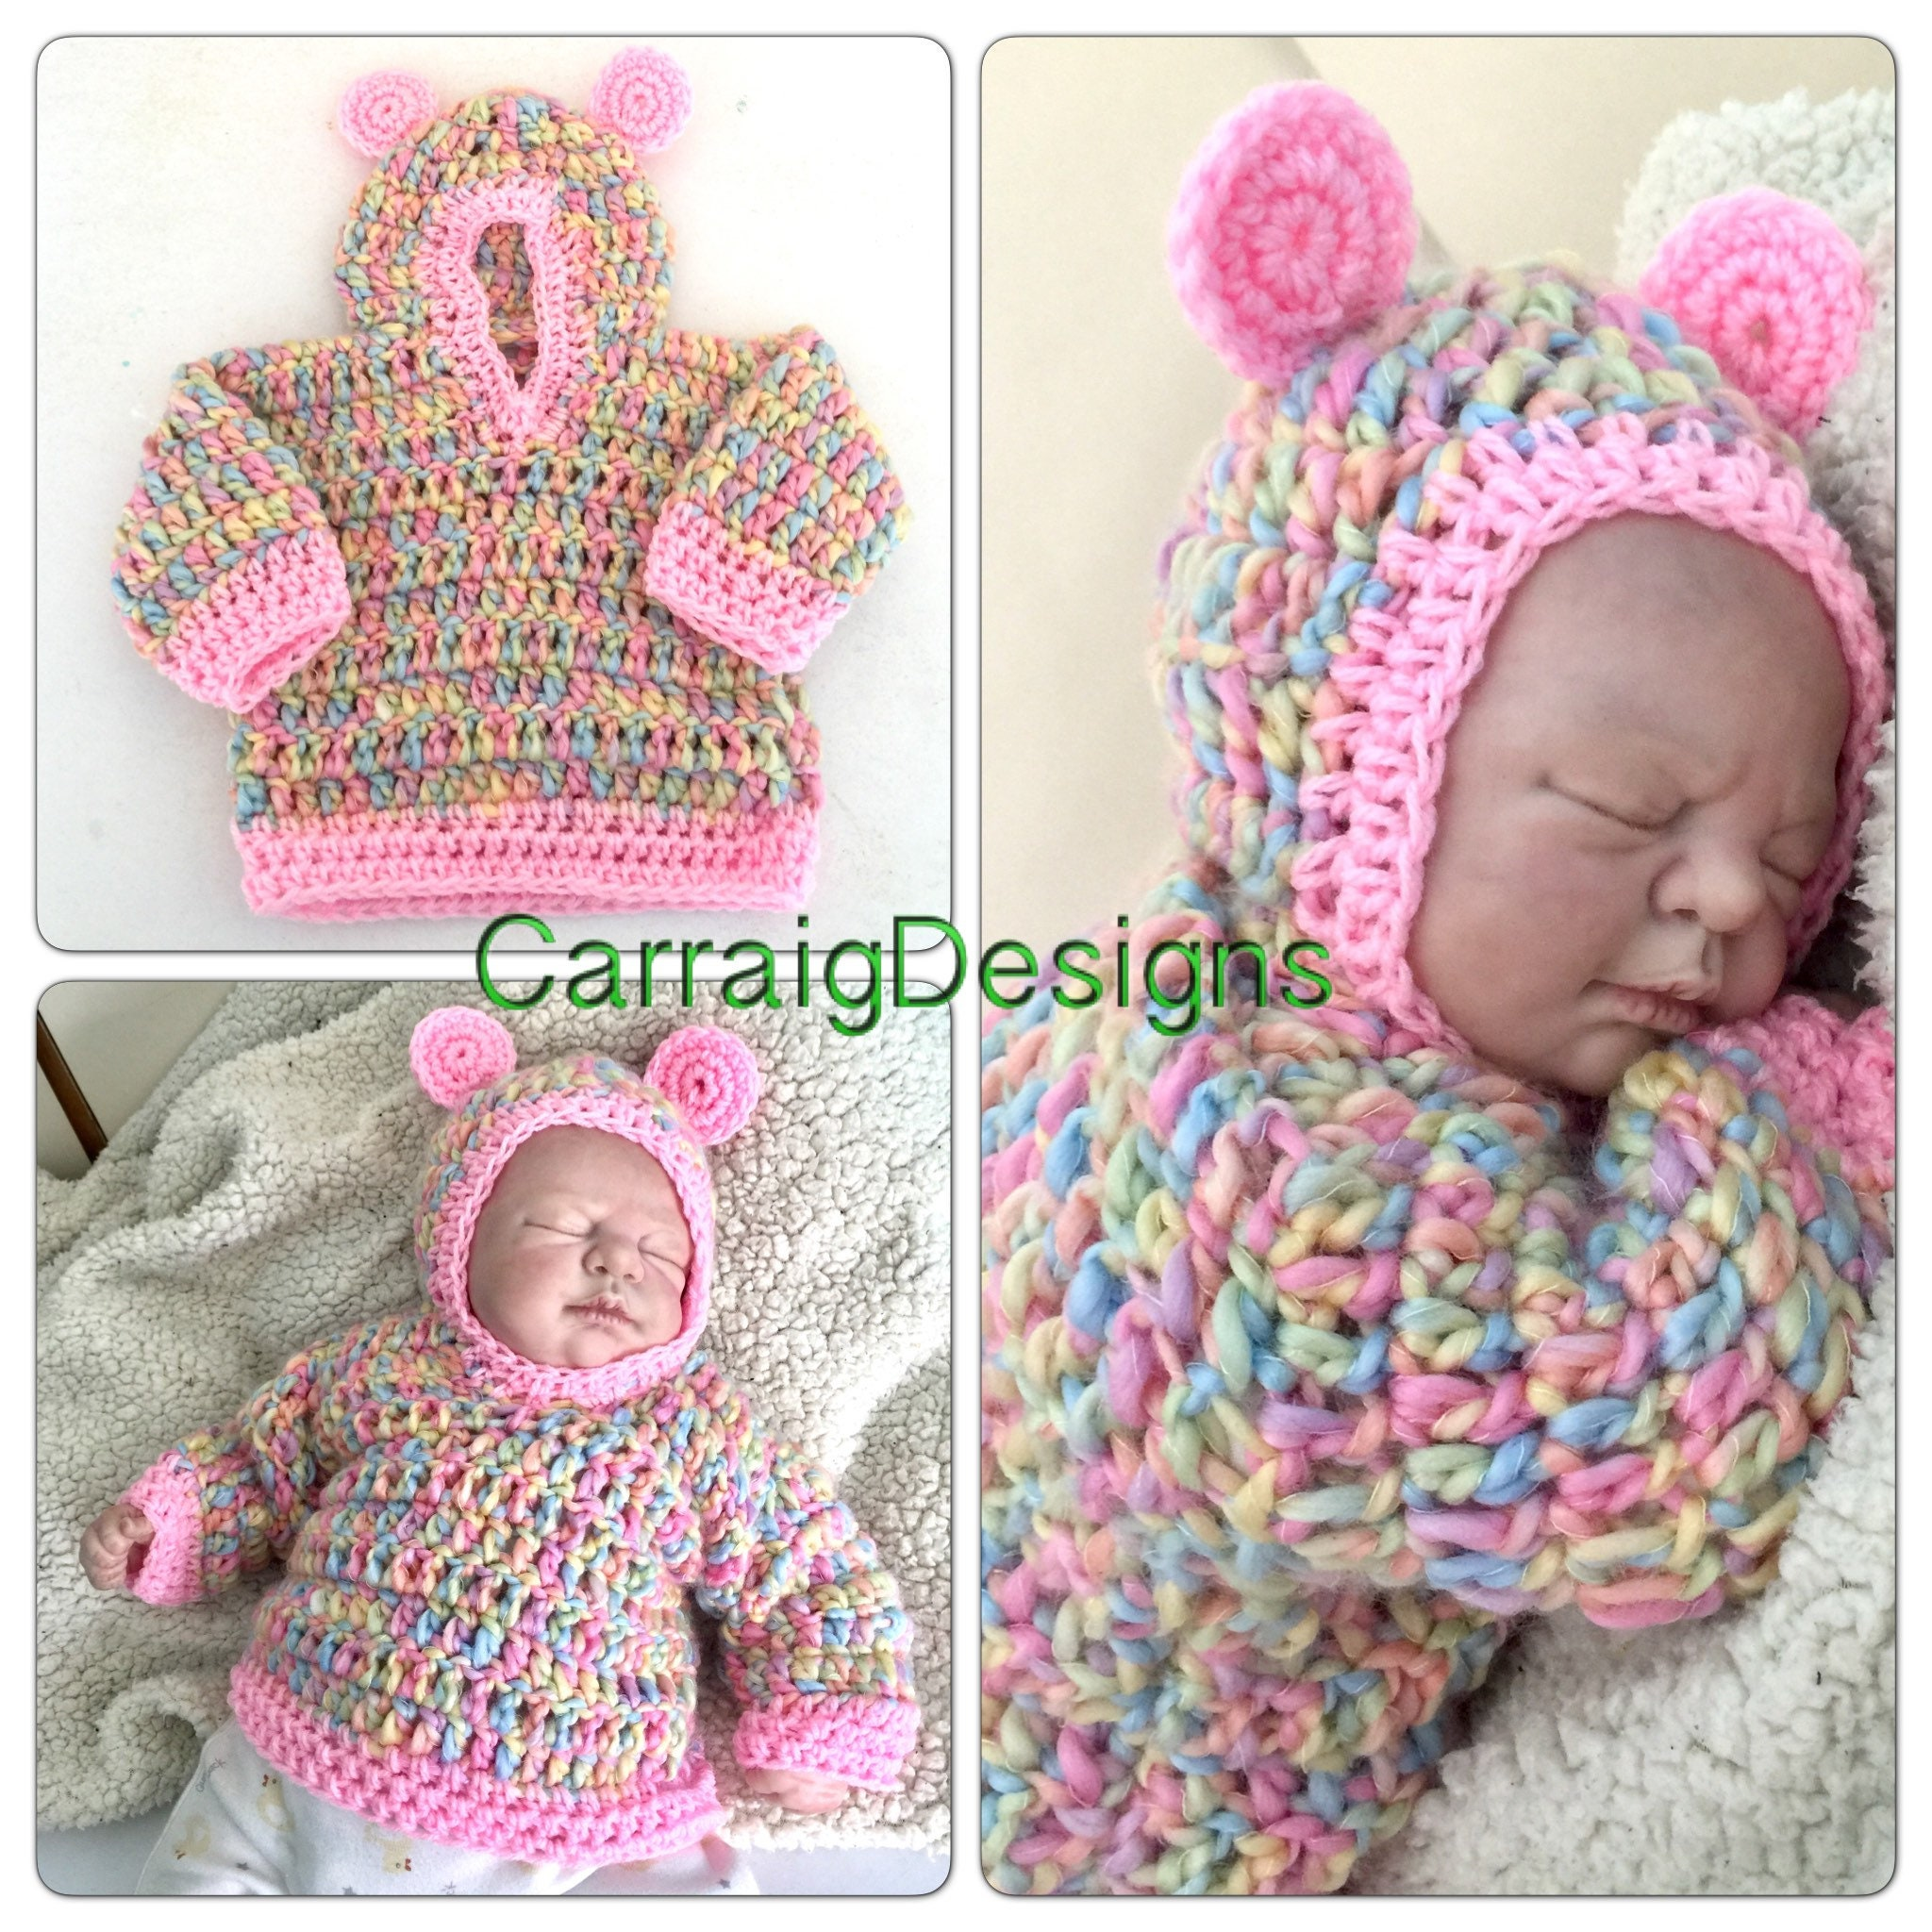 1449b3d844a6 0-3 months Baby girl crochet knitted hippie hooded ears sweater ...